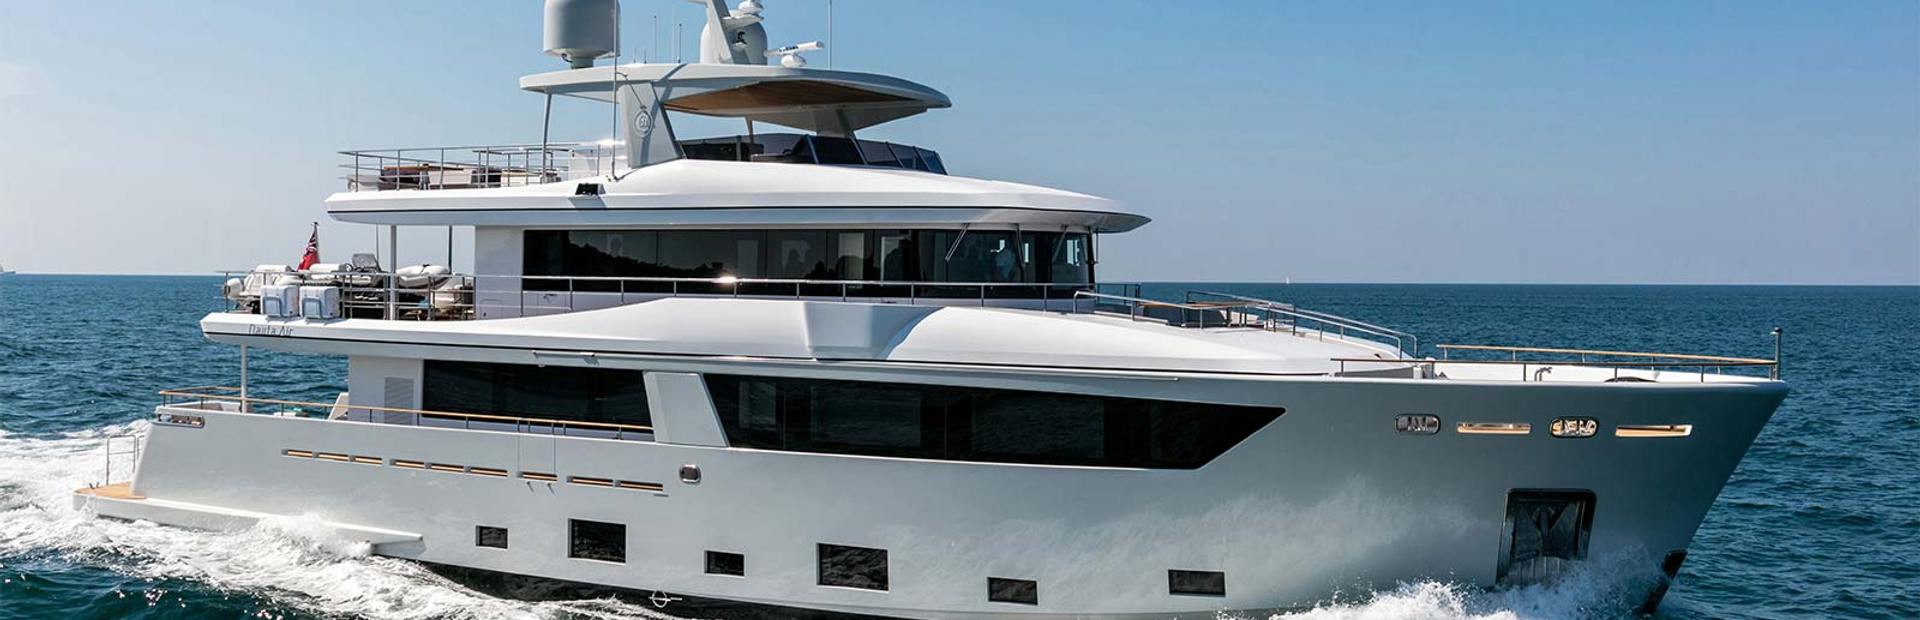 Cantiere Delle Marche Nauta Air 108 Yacht Charter